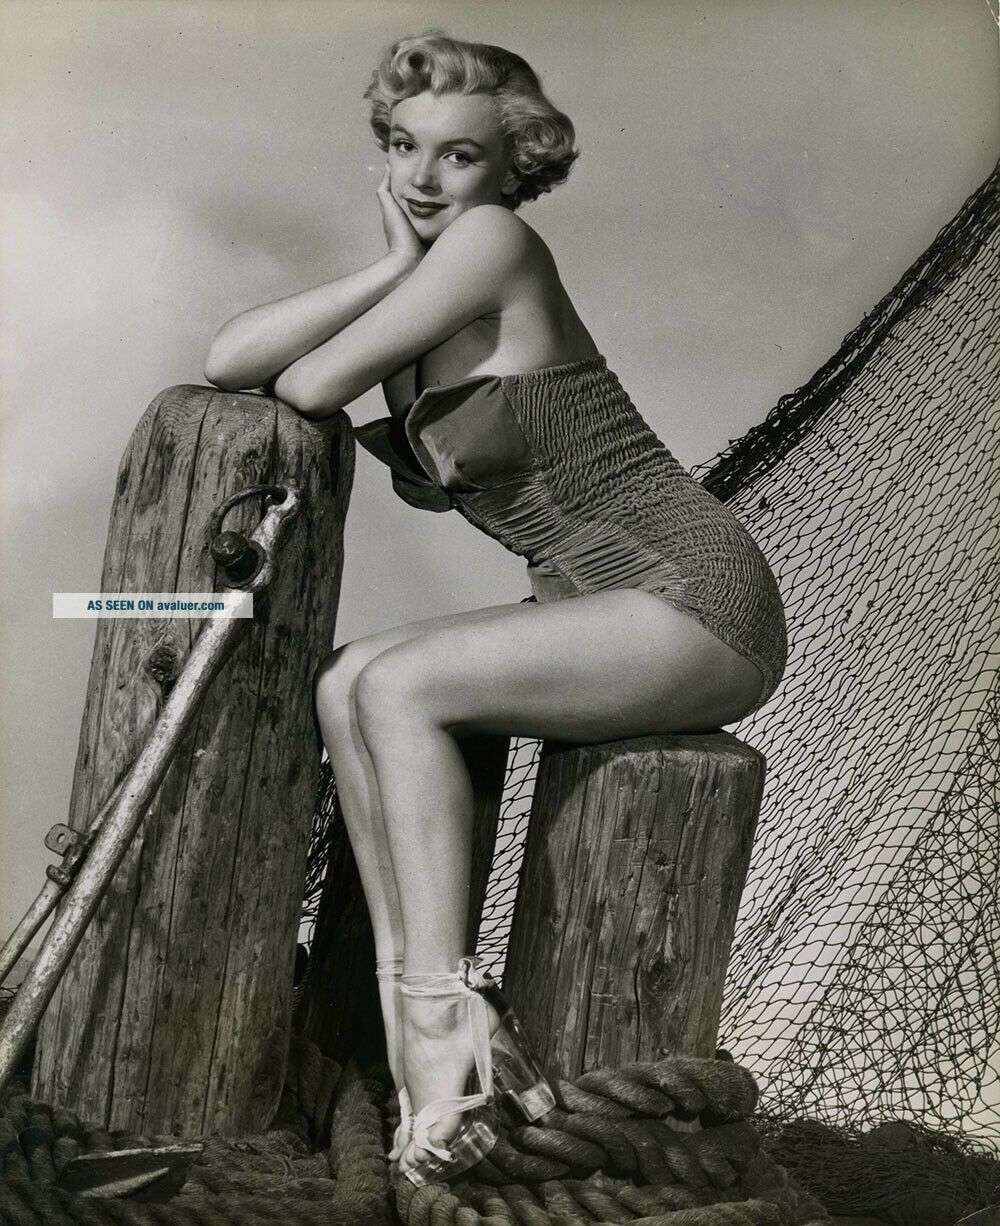 Marilyn Monroe 1951 Vintage Cheesecake Pin Up Photograph Love Nest Early Rarity